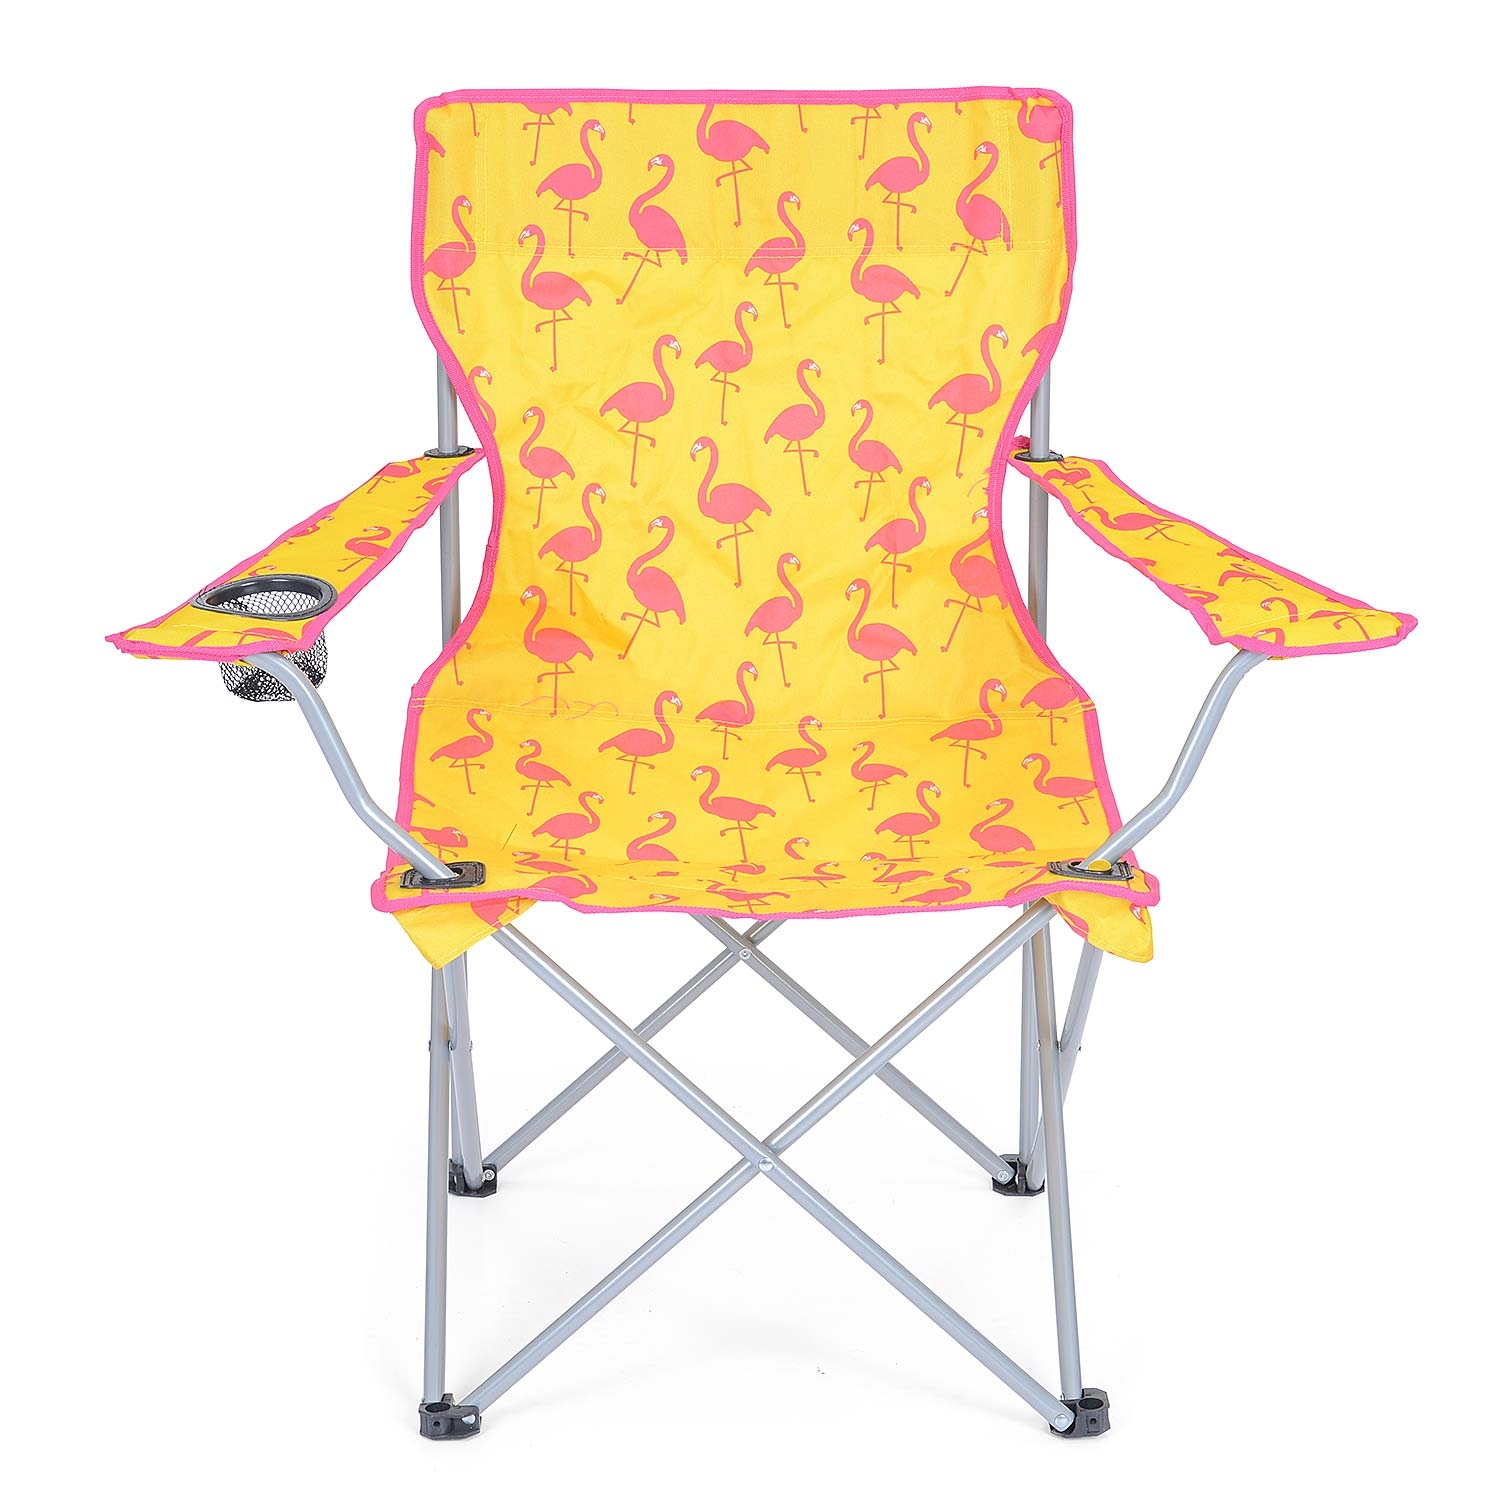 Folding-Camping-Chair-Lightweight-Beach-Festival-Outdoor-Travel-Seat-Flamingo thumbnail 12